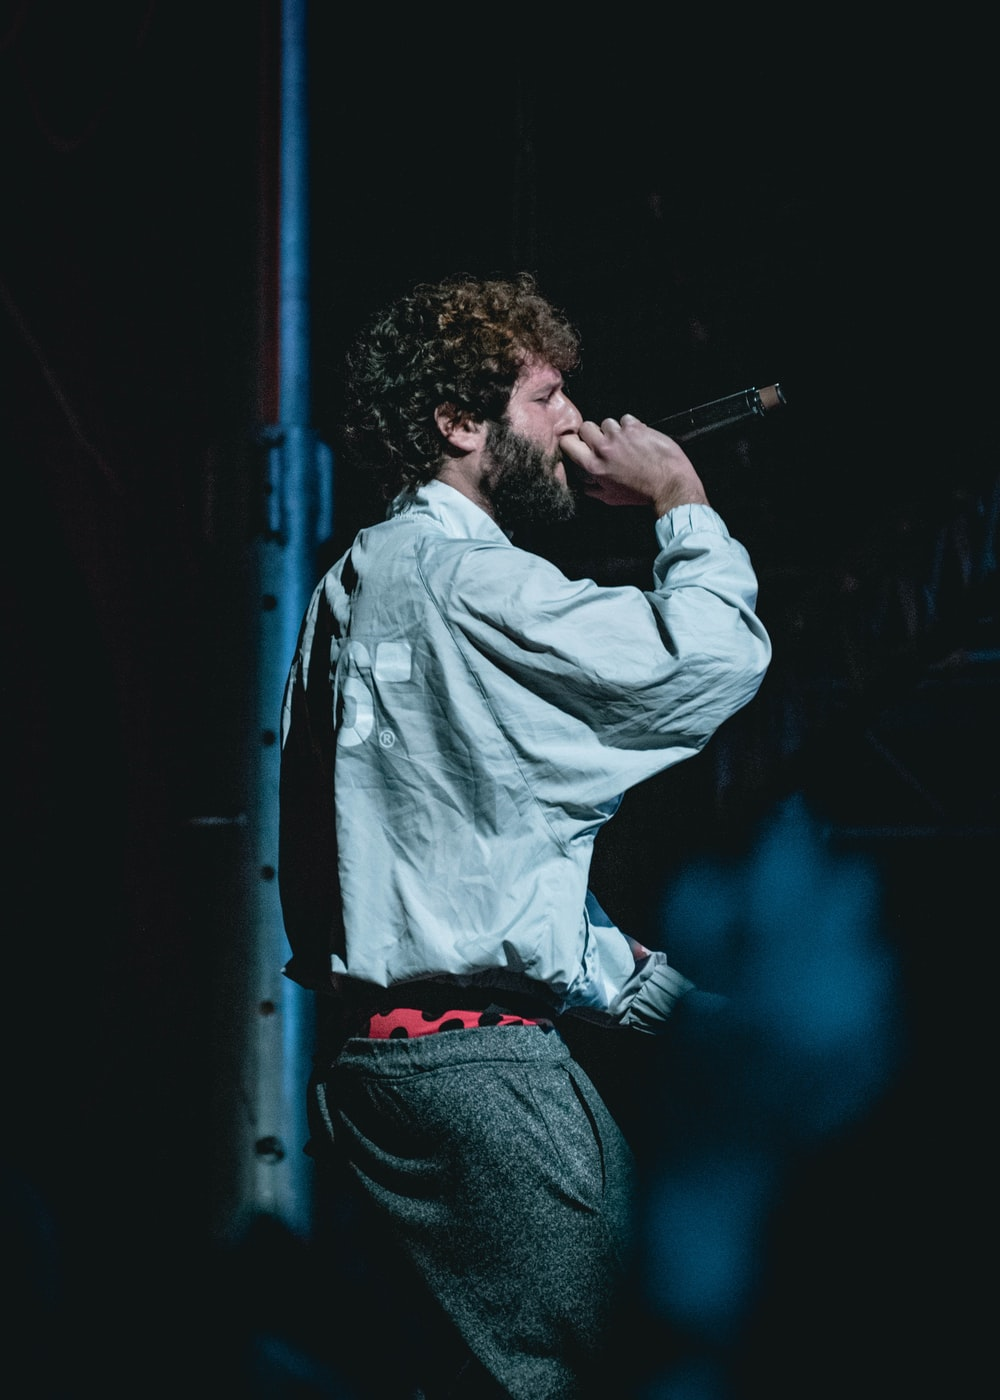 man holding cordless microphone on stage